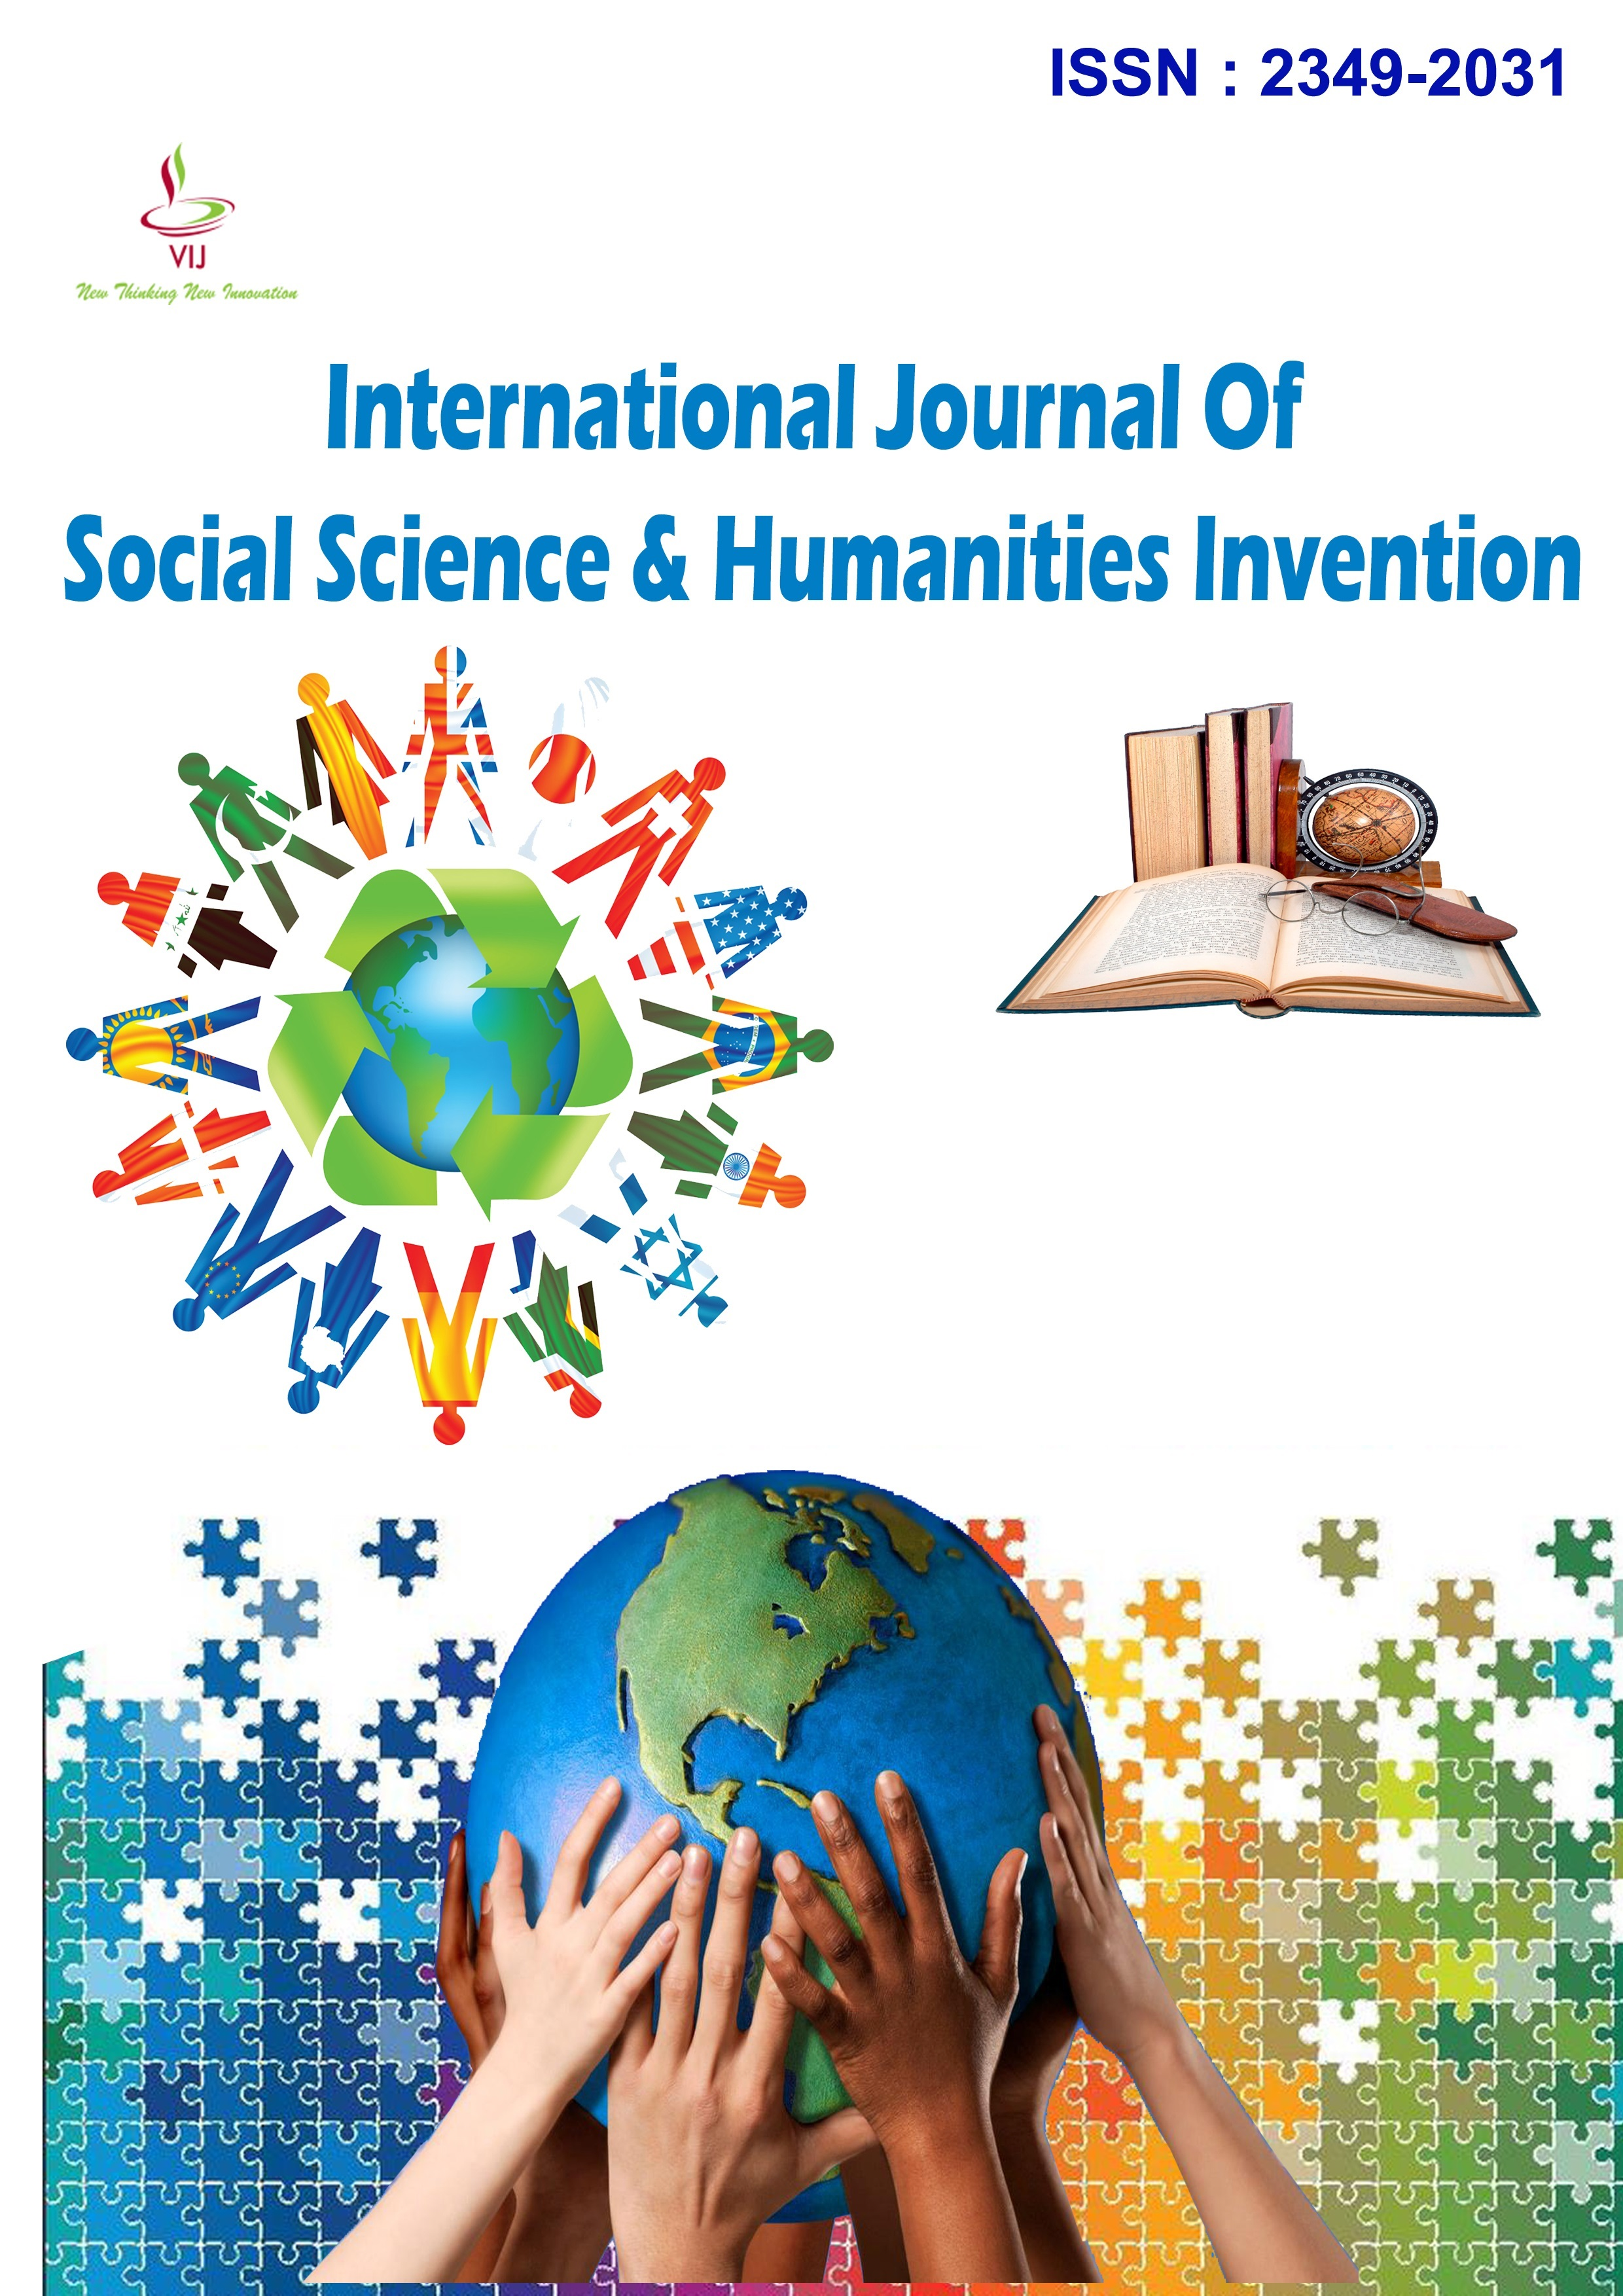 the international journal of social sciences and humanities invention